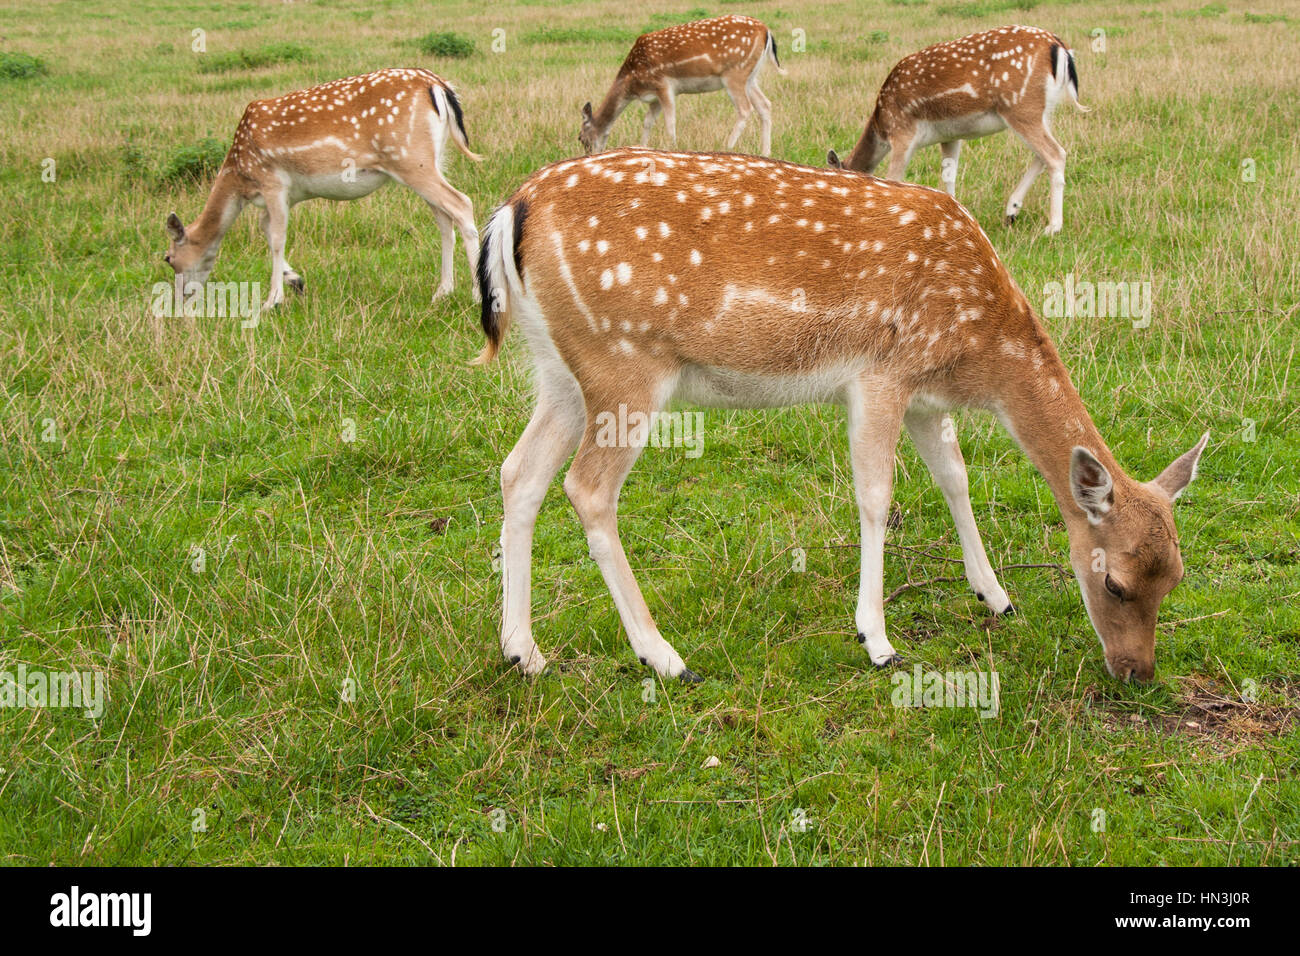 Four Fallow Deer does, one in foreground, three behind, grazing in field standing sideways on Stock Photo